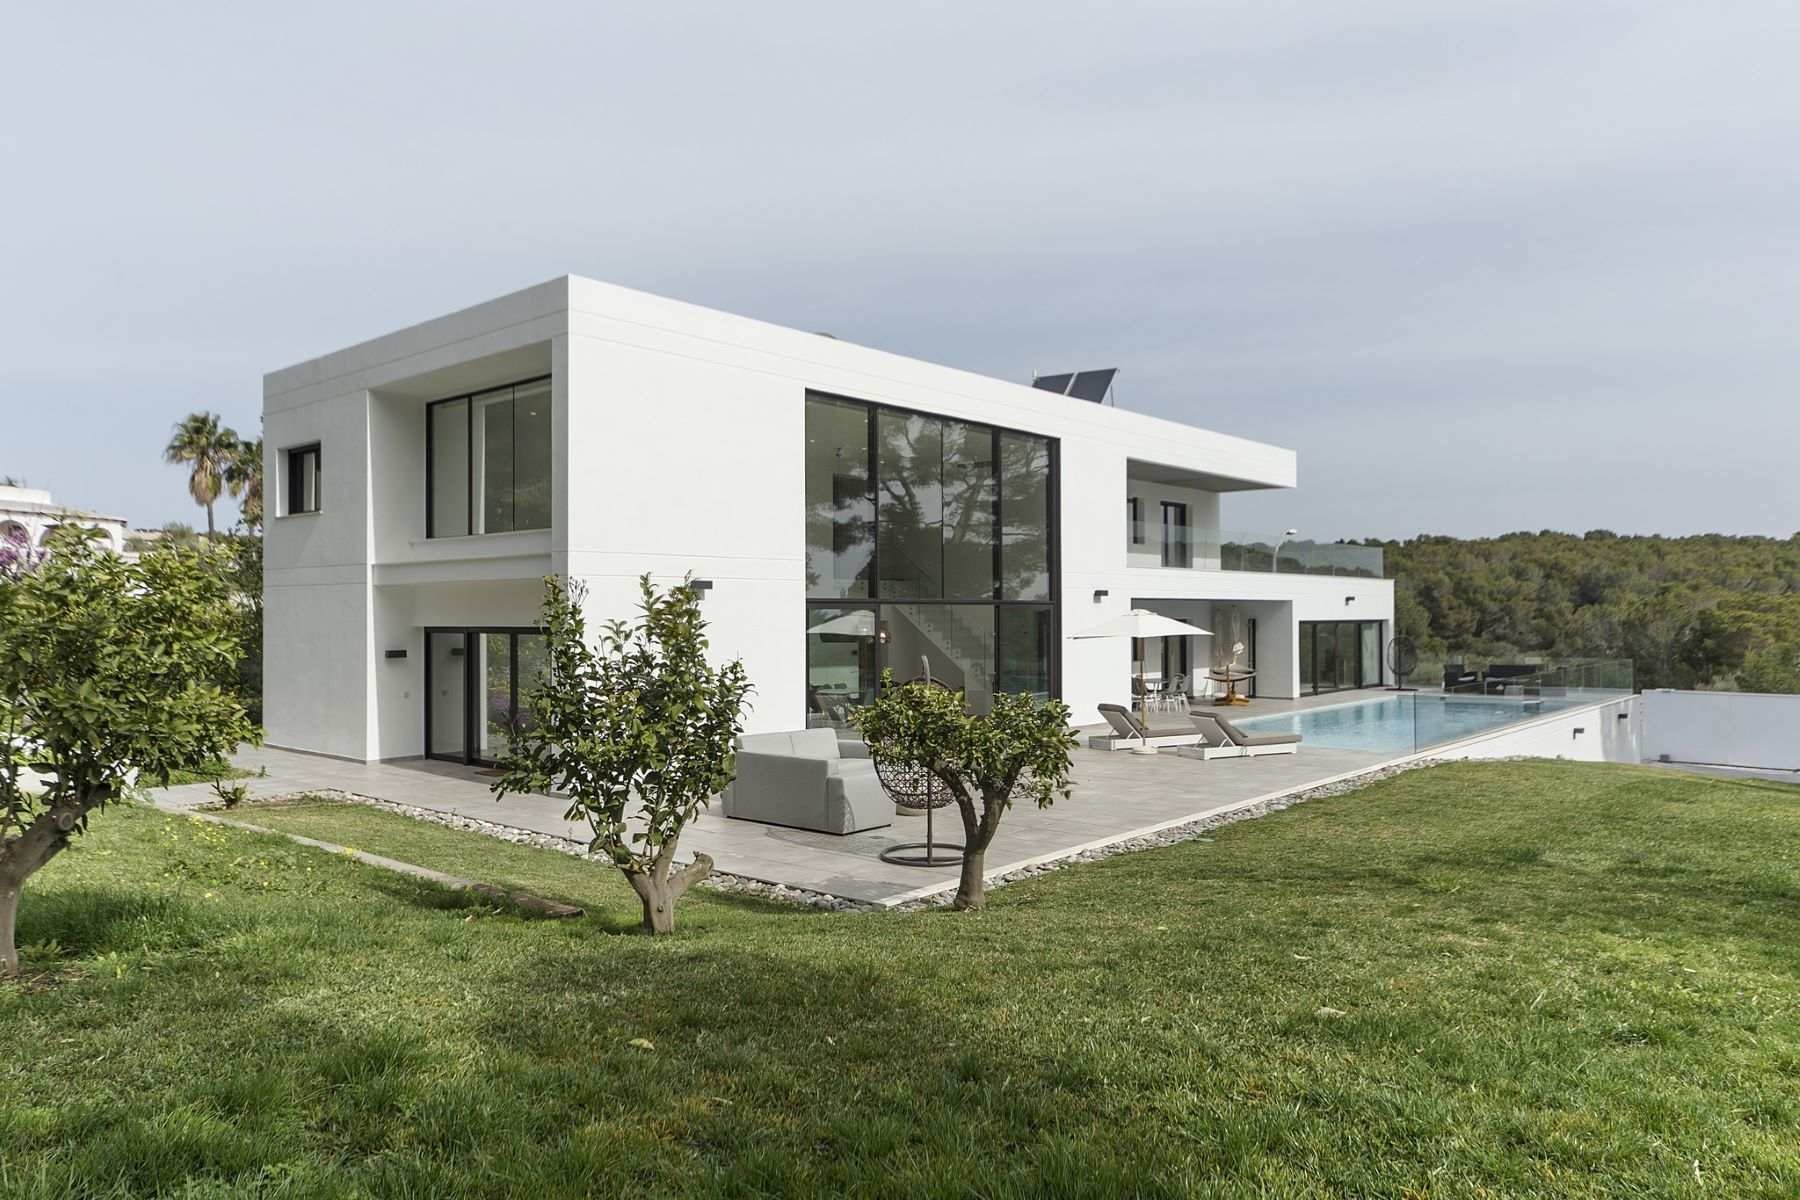 Single Family Home for Sale at Modern villa with a big garden close to the beach Calvia, Balearic Islands Spain